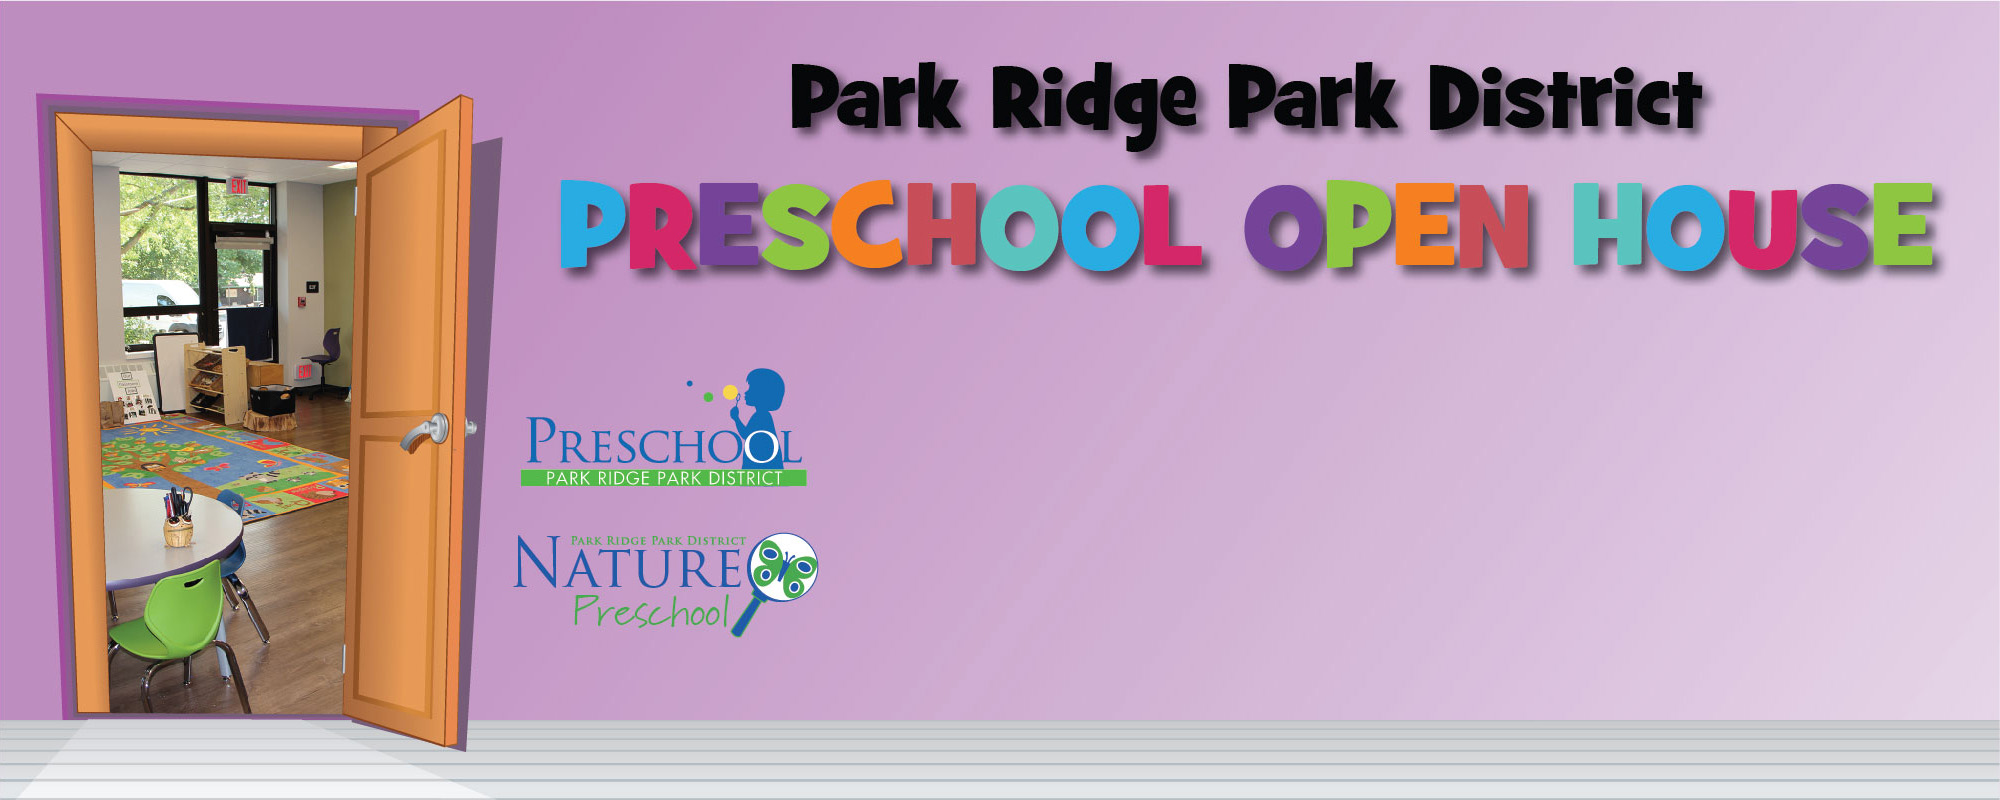 Visit Our Preschool Programs on 2/22